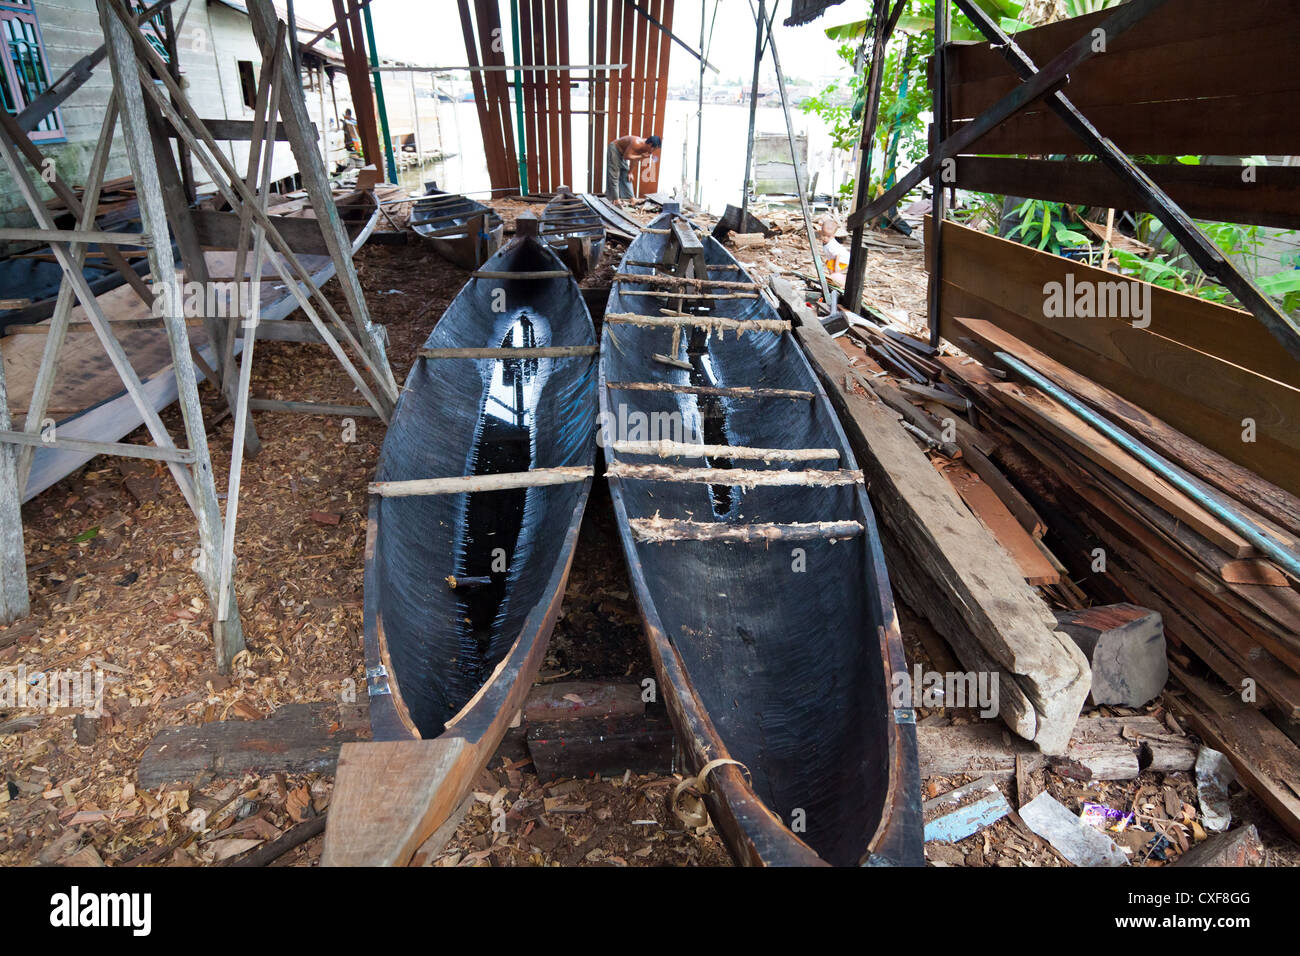 Traditional River Boat in a Boatyard in Banjarmasin in Indonesia - Stock Image